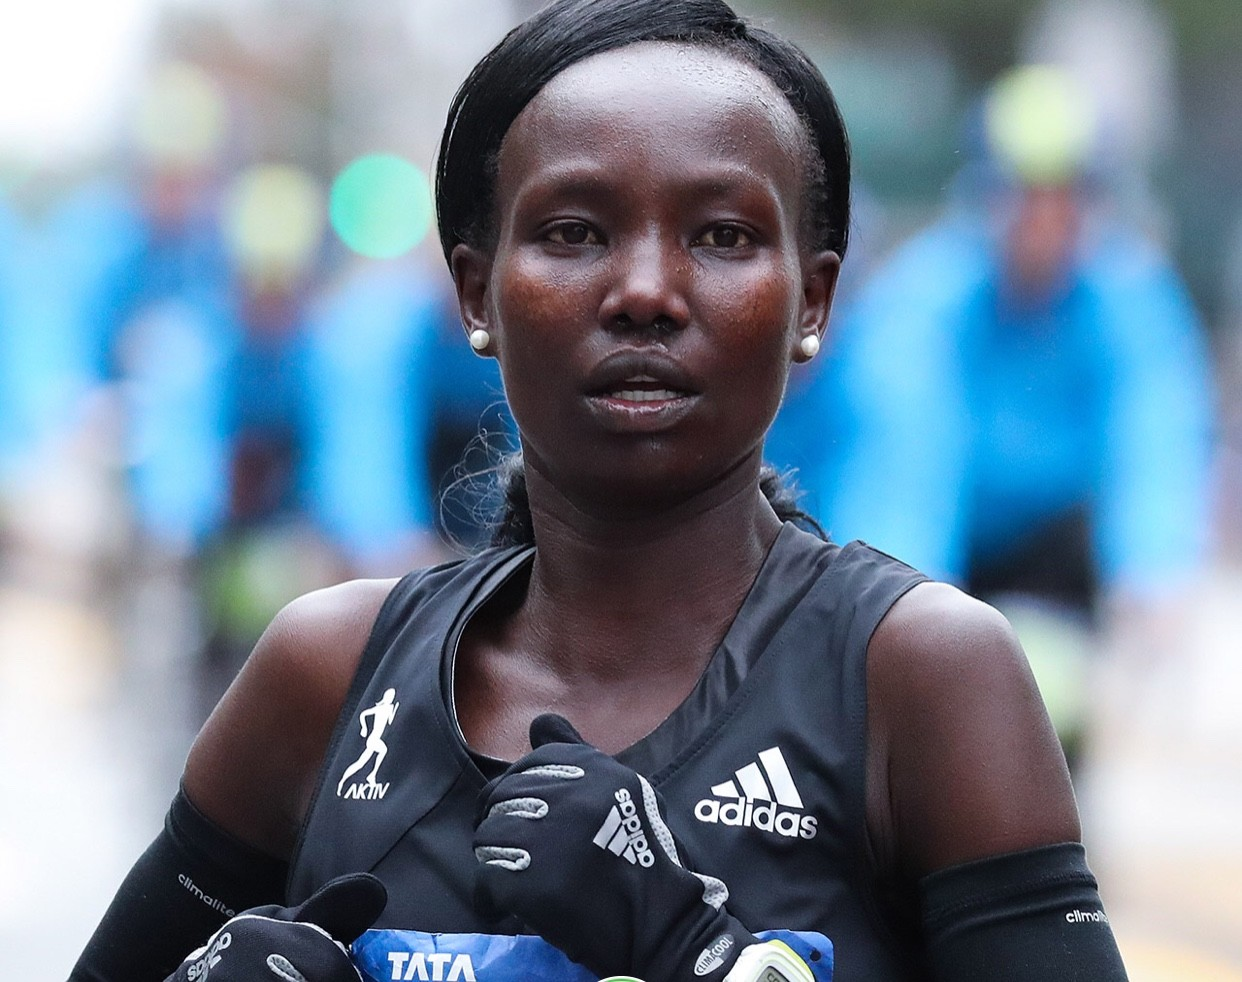 Kenya's Mary Keitany pulled off her fourth New York City Marathon win crushing the field